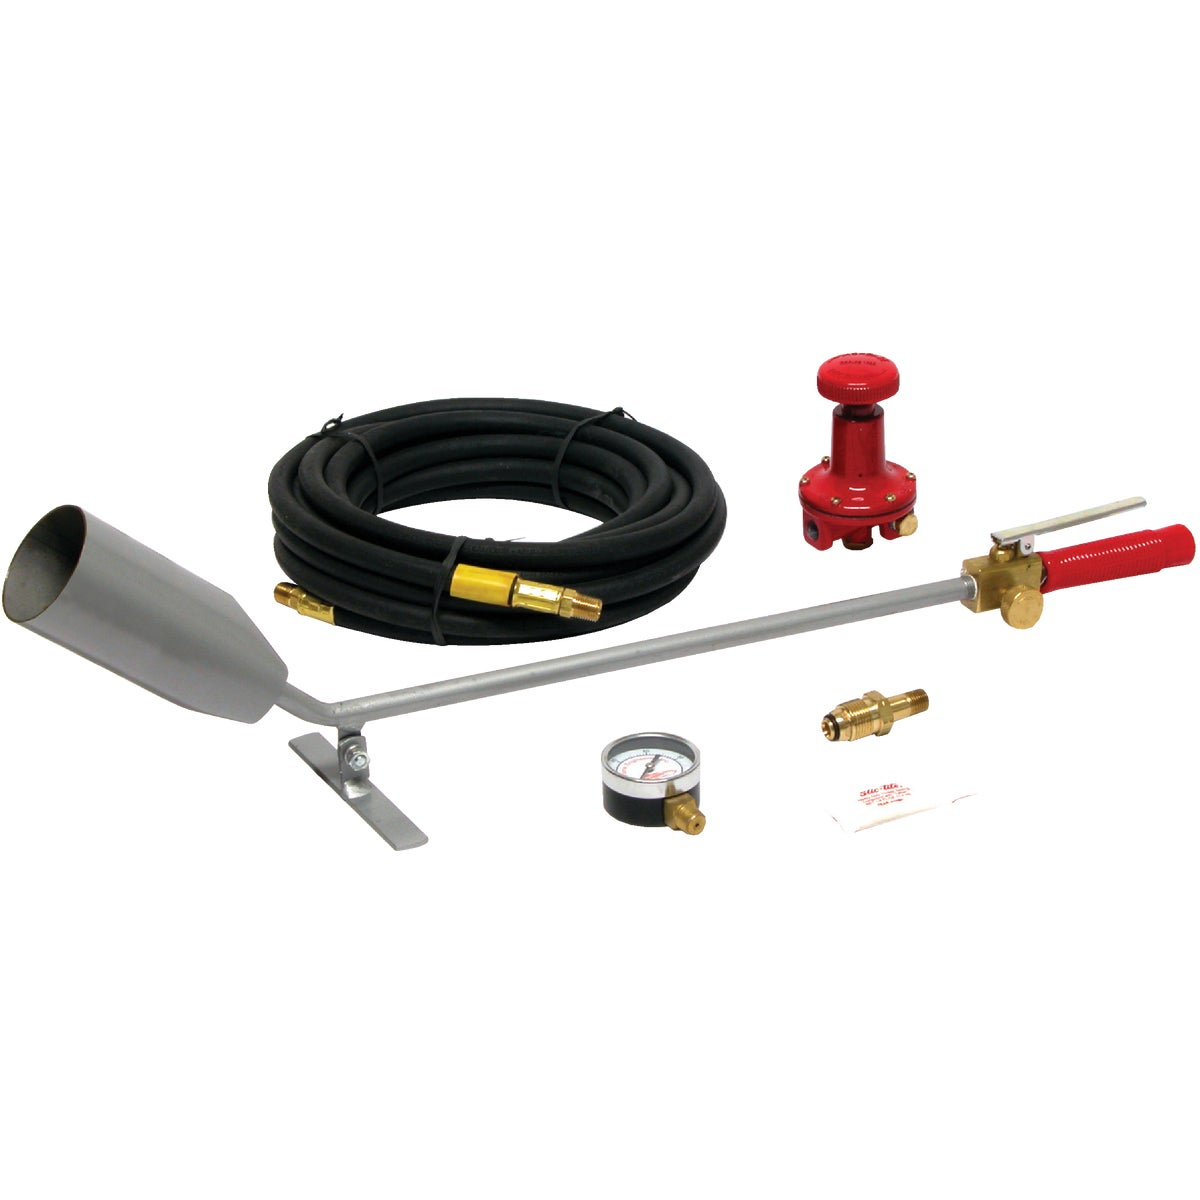 400000 BTU ROOF TRCH KIT - RT BASIC by Flame Engineering